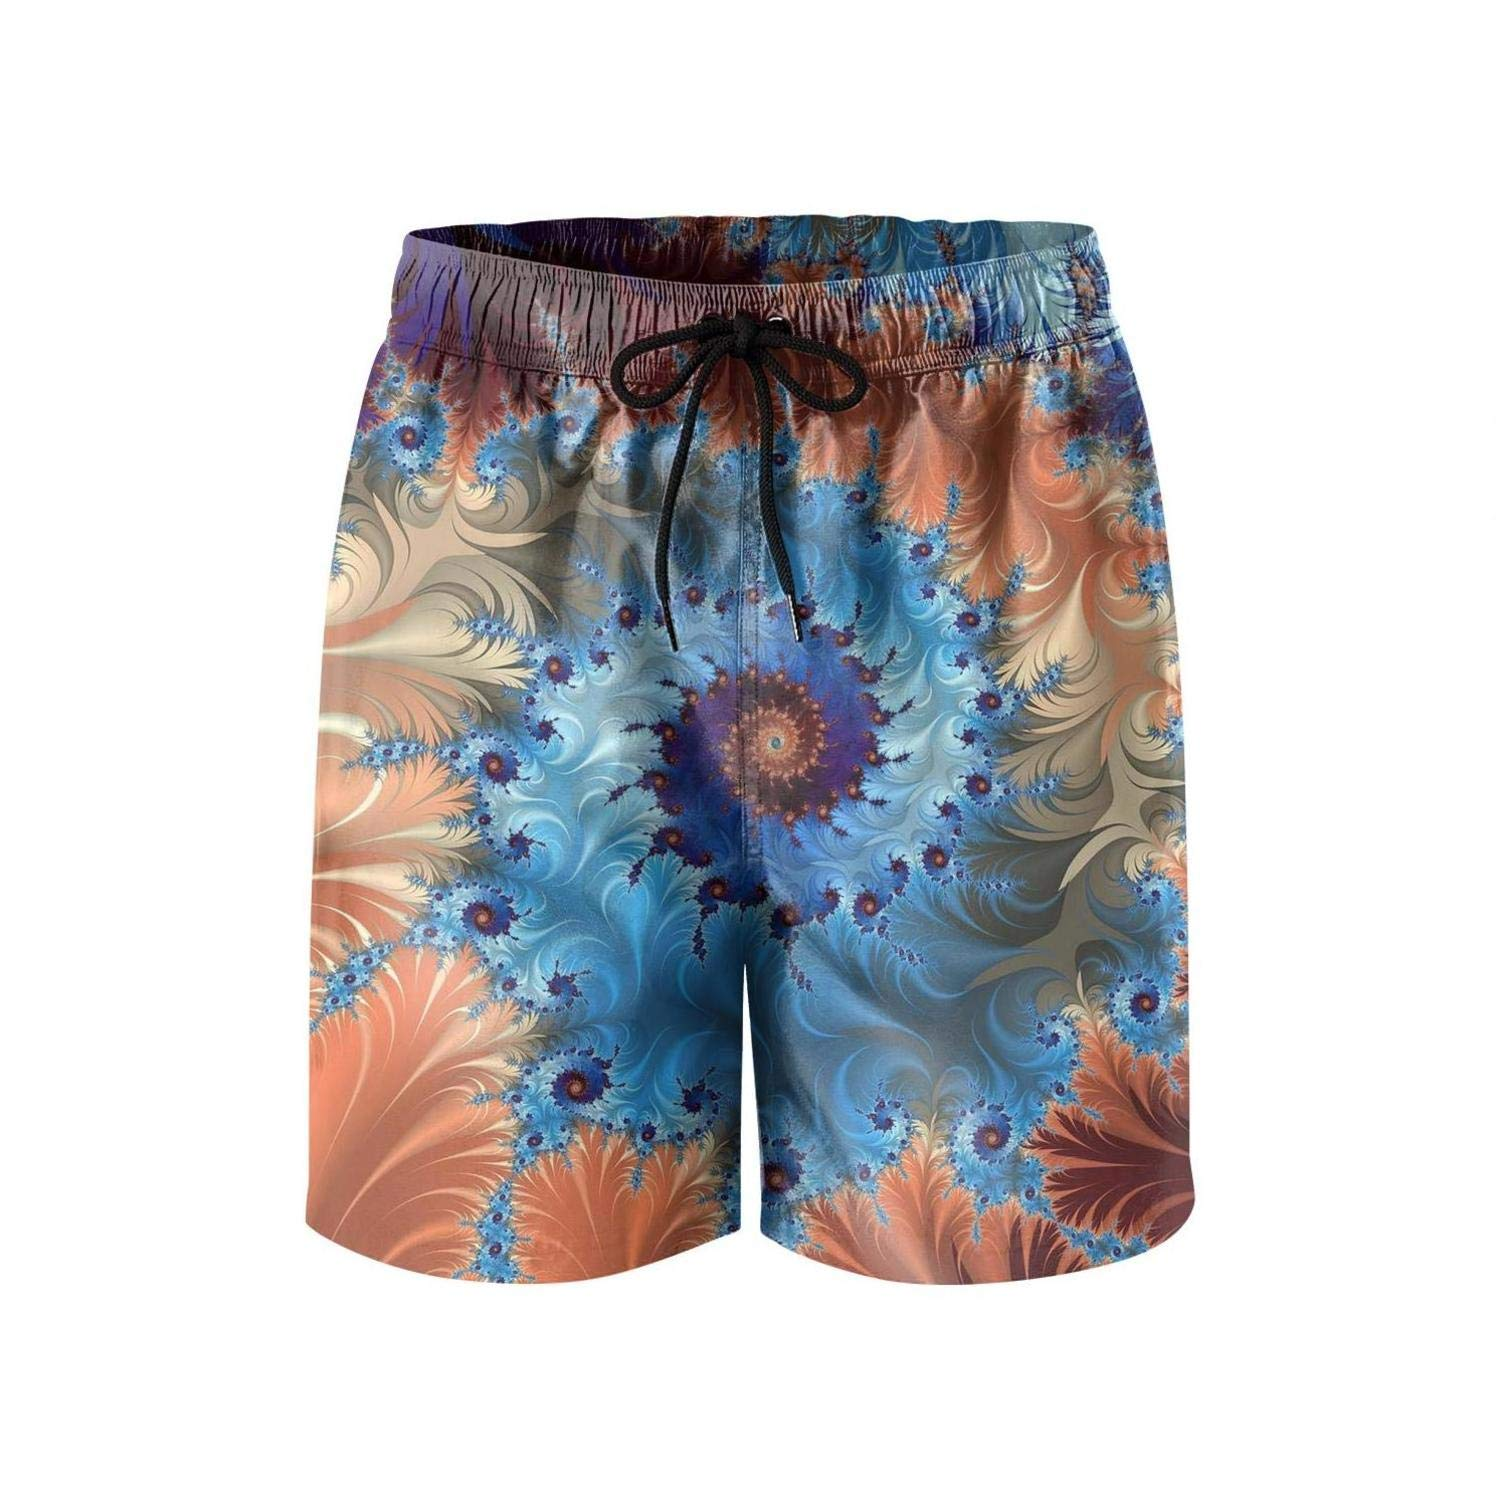 IOY//halol The Universe Trippy Mens Swimming Trunks Beach Board Shorts Fully Lined Waterproof Graphic Short Pants Beachwear